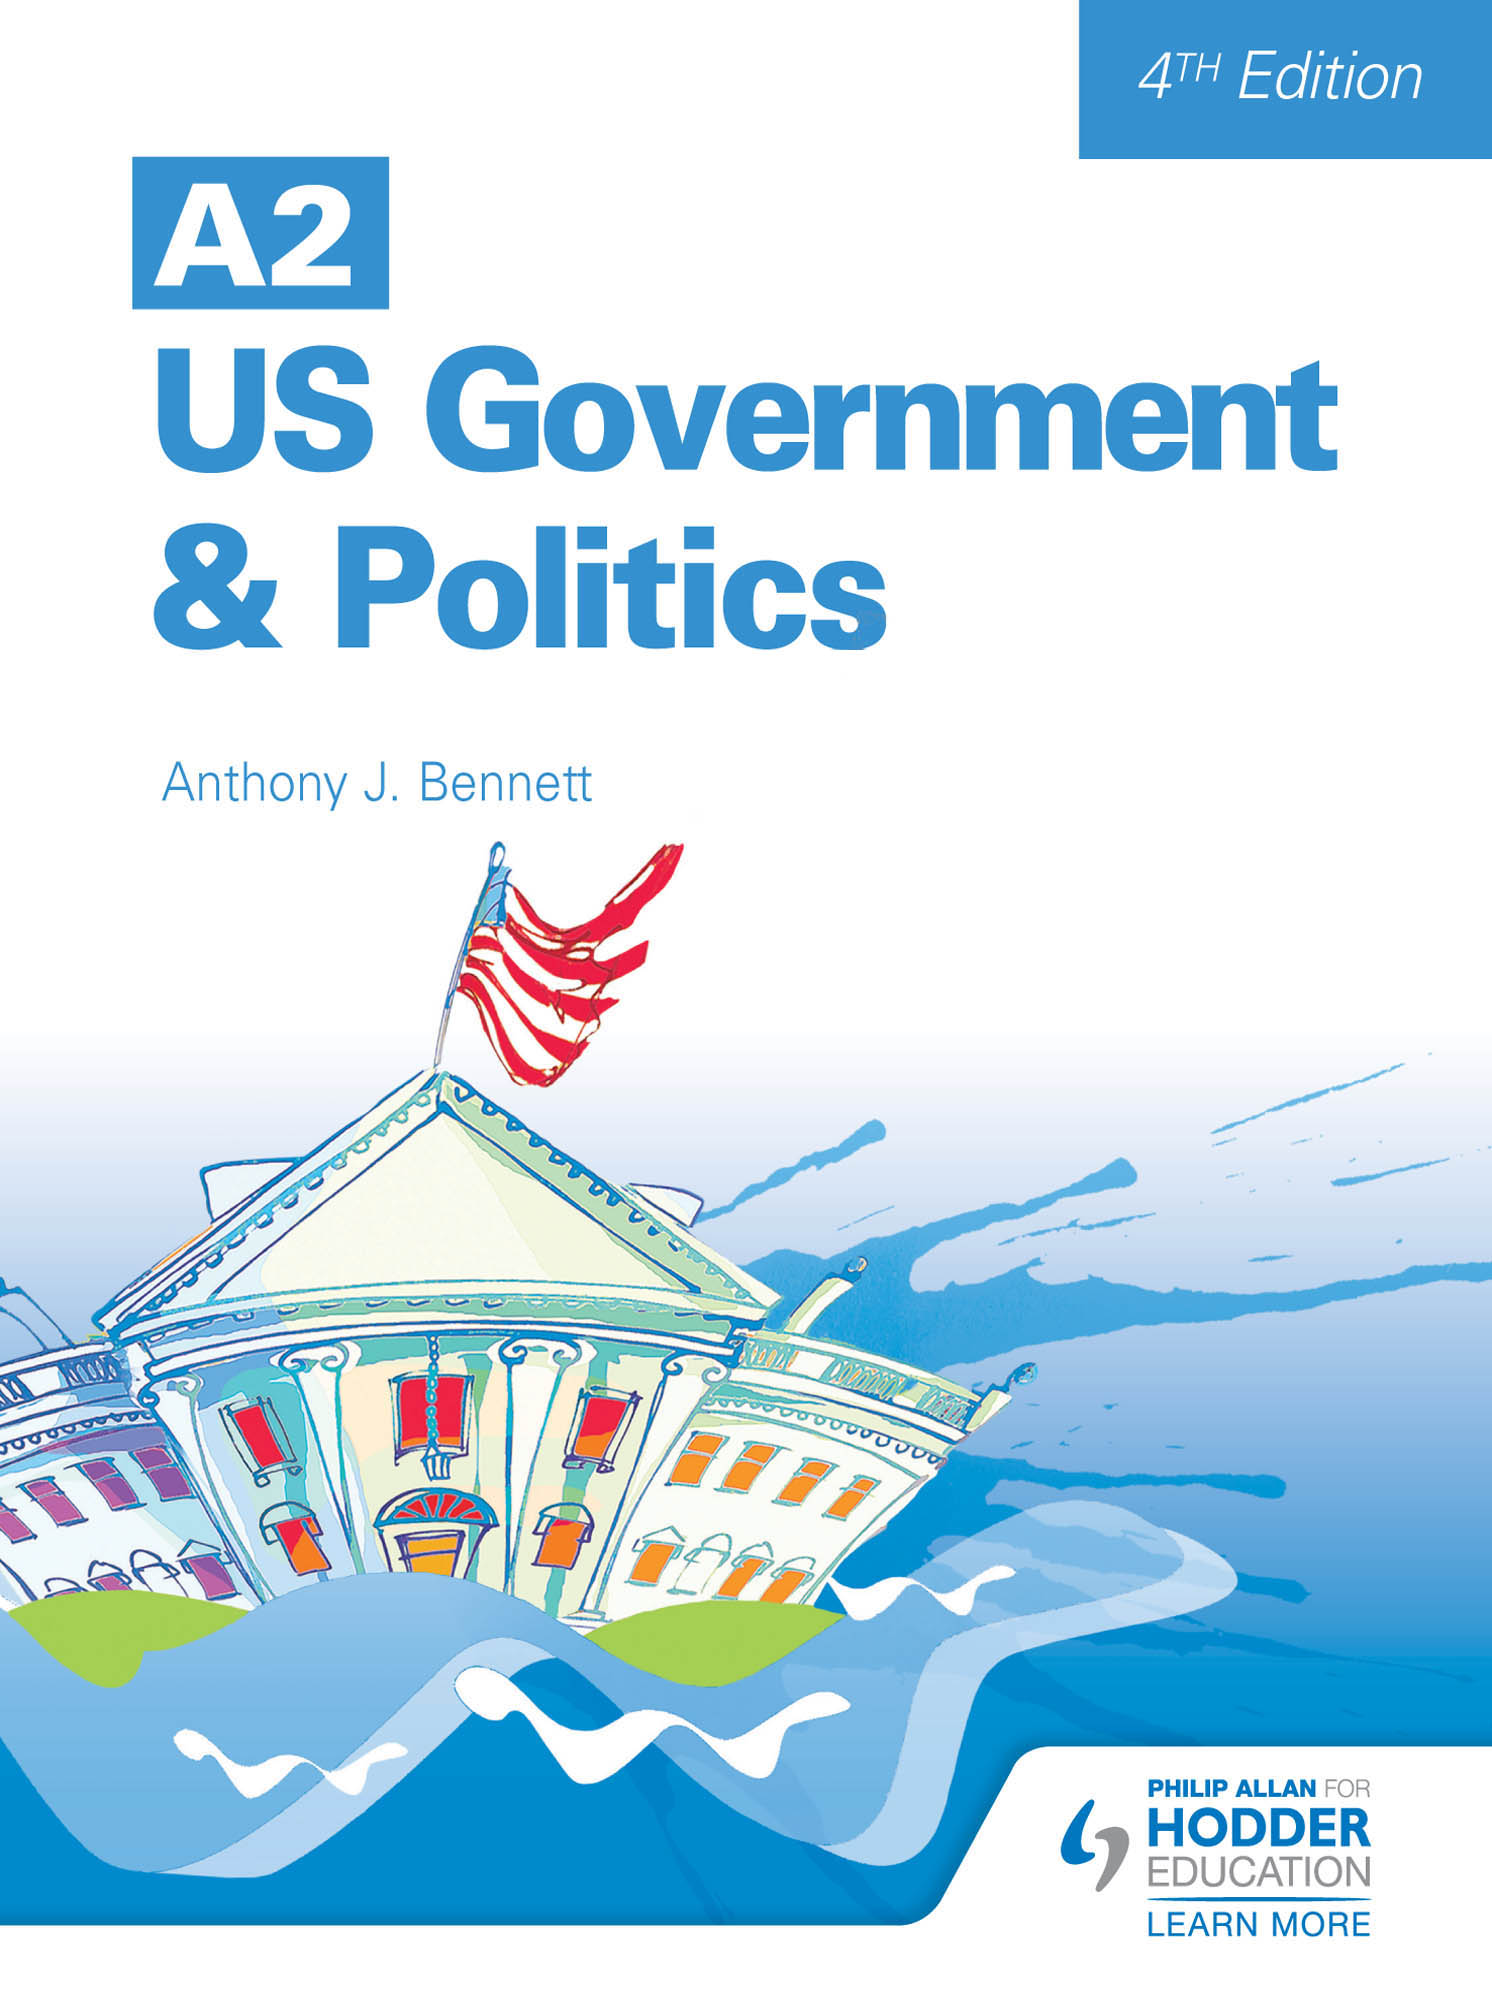 essay about politics and government